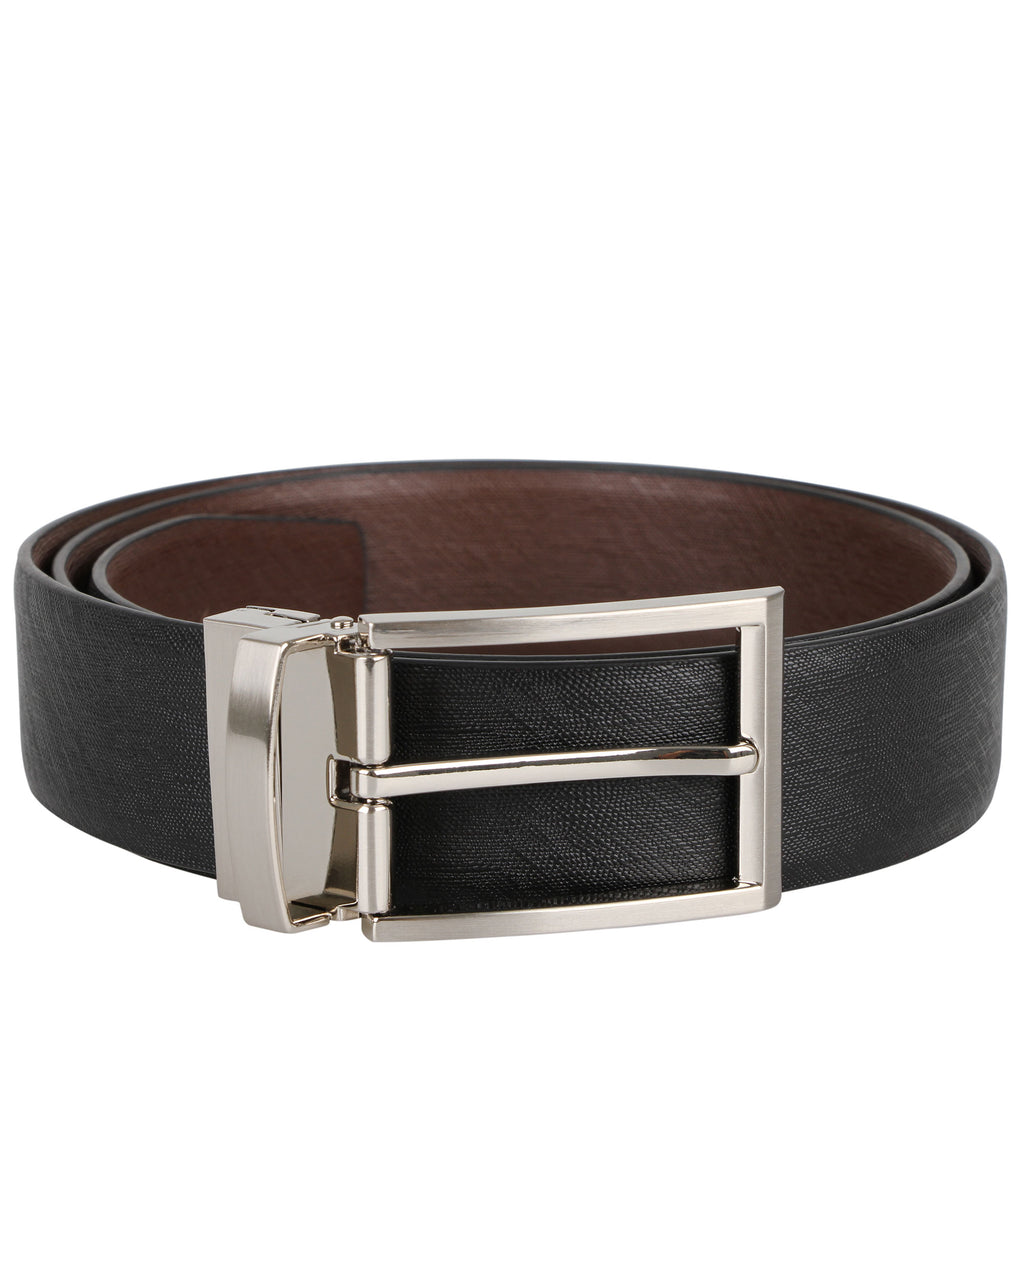 Tomaz Belt NT161 (Black Brown)